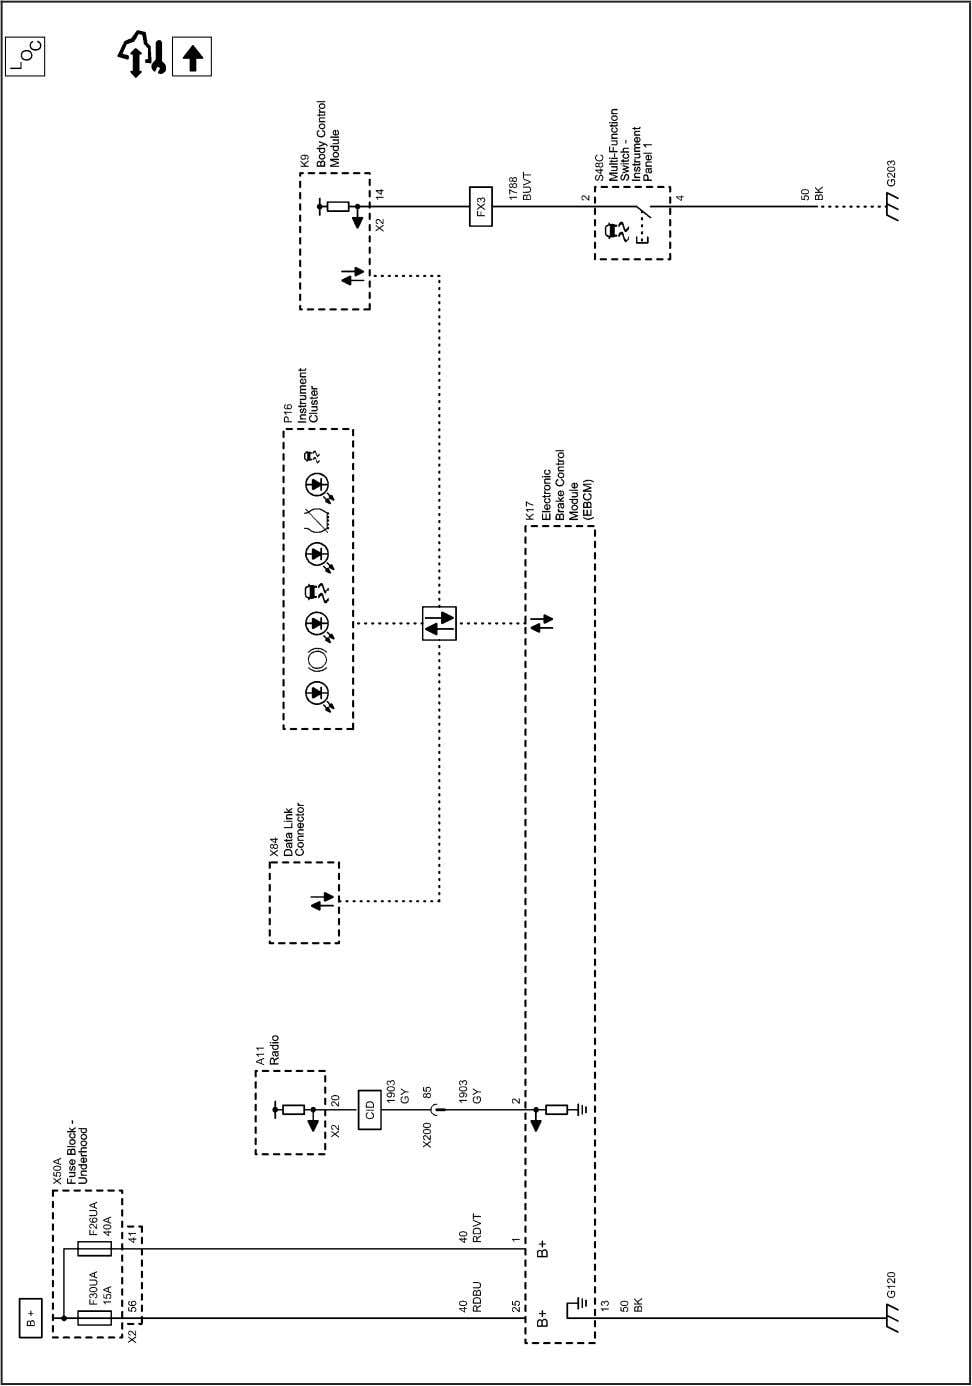 Antilock Brake System 2202857 Antilock Brake System Schematics (Power, Ground and Serial Data) 2010 - Cruze